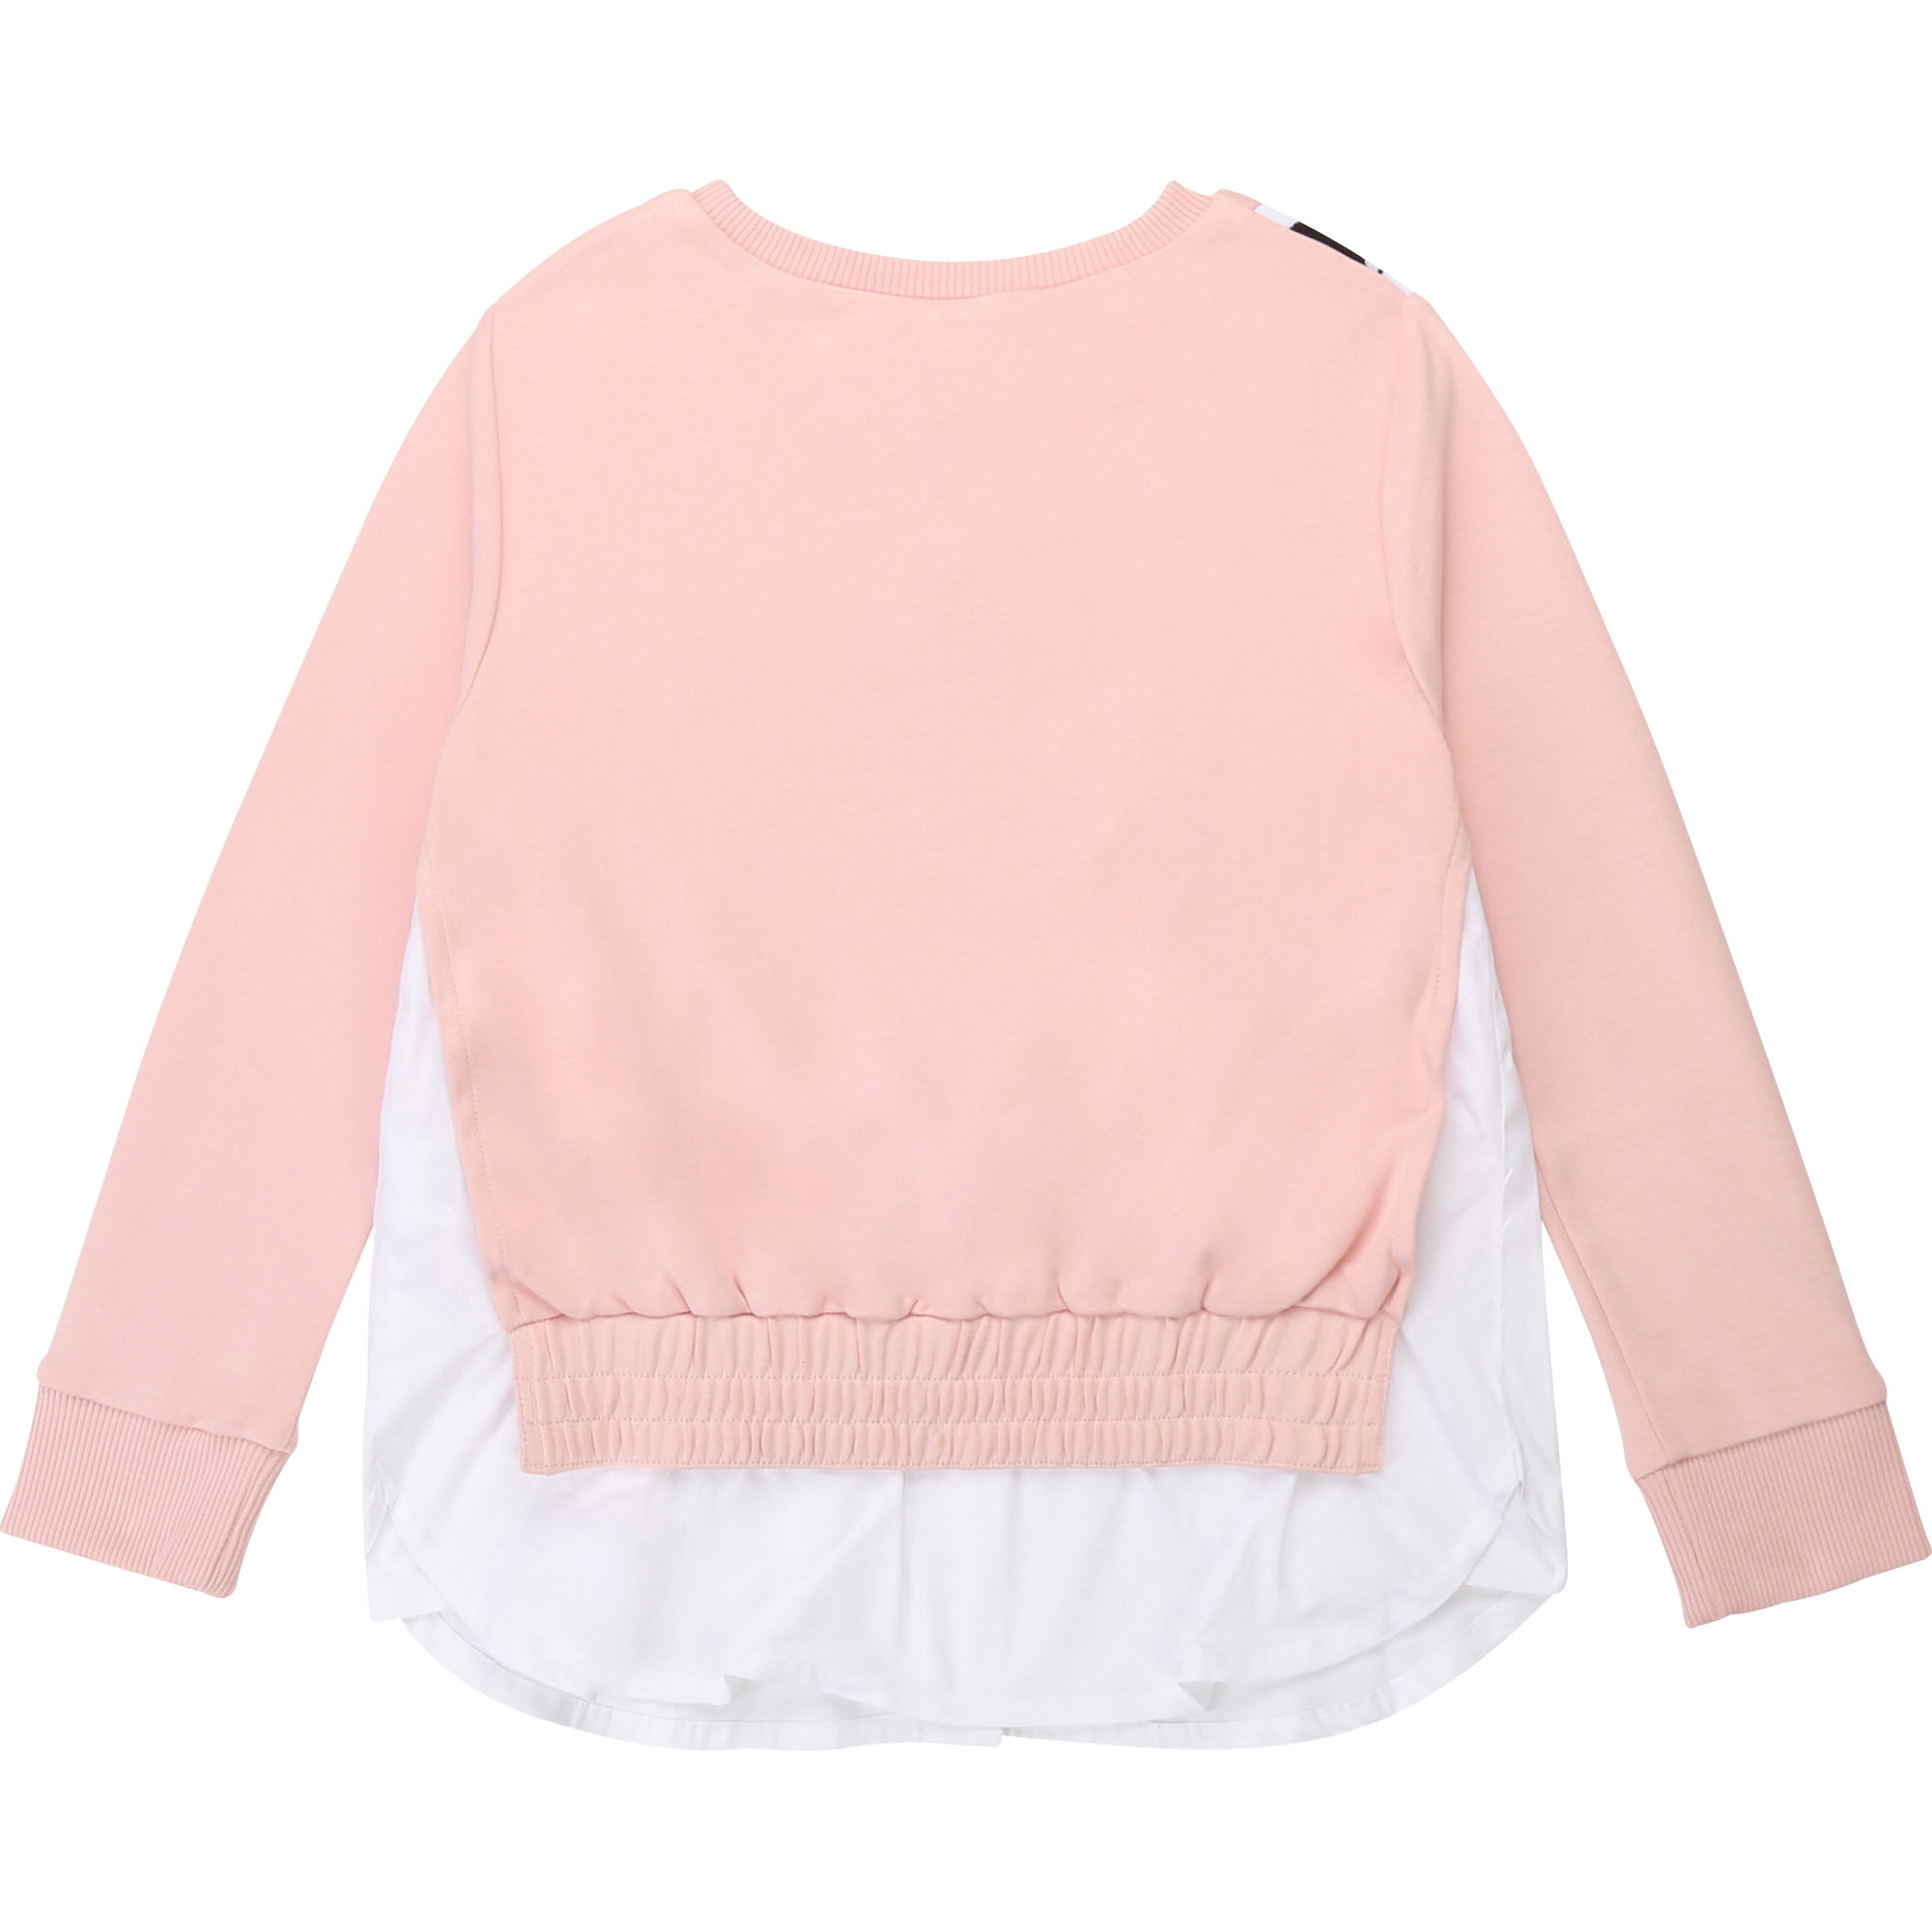 2-in-1 cotton sweatshirt DKNY for GIRL